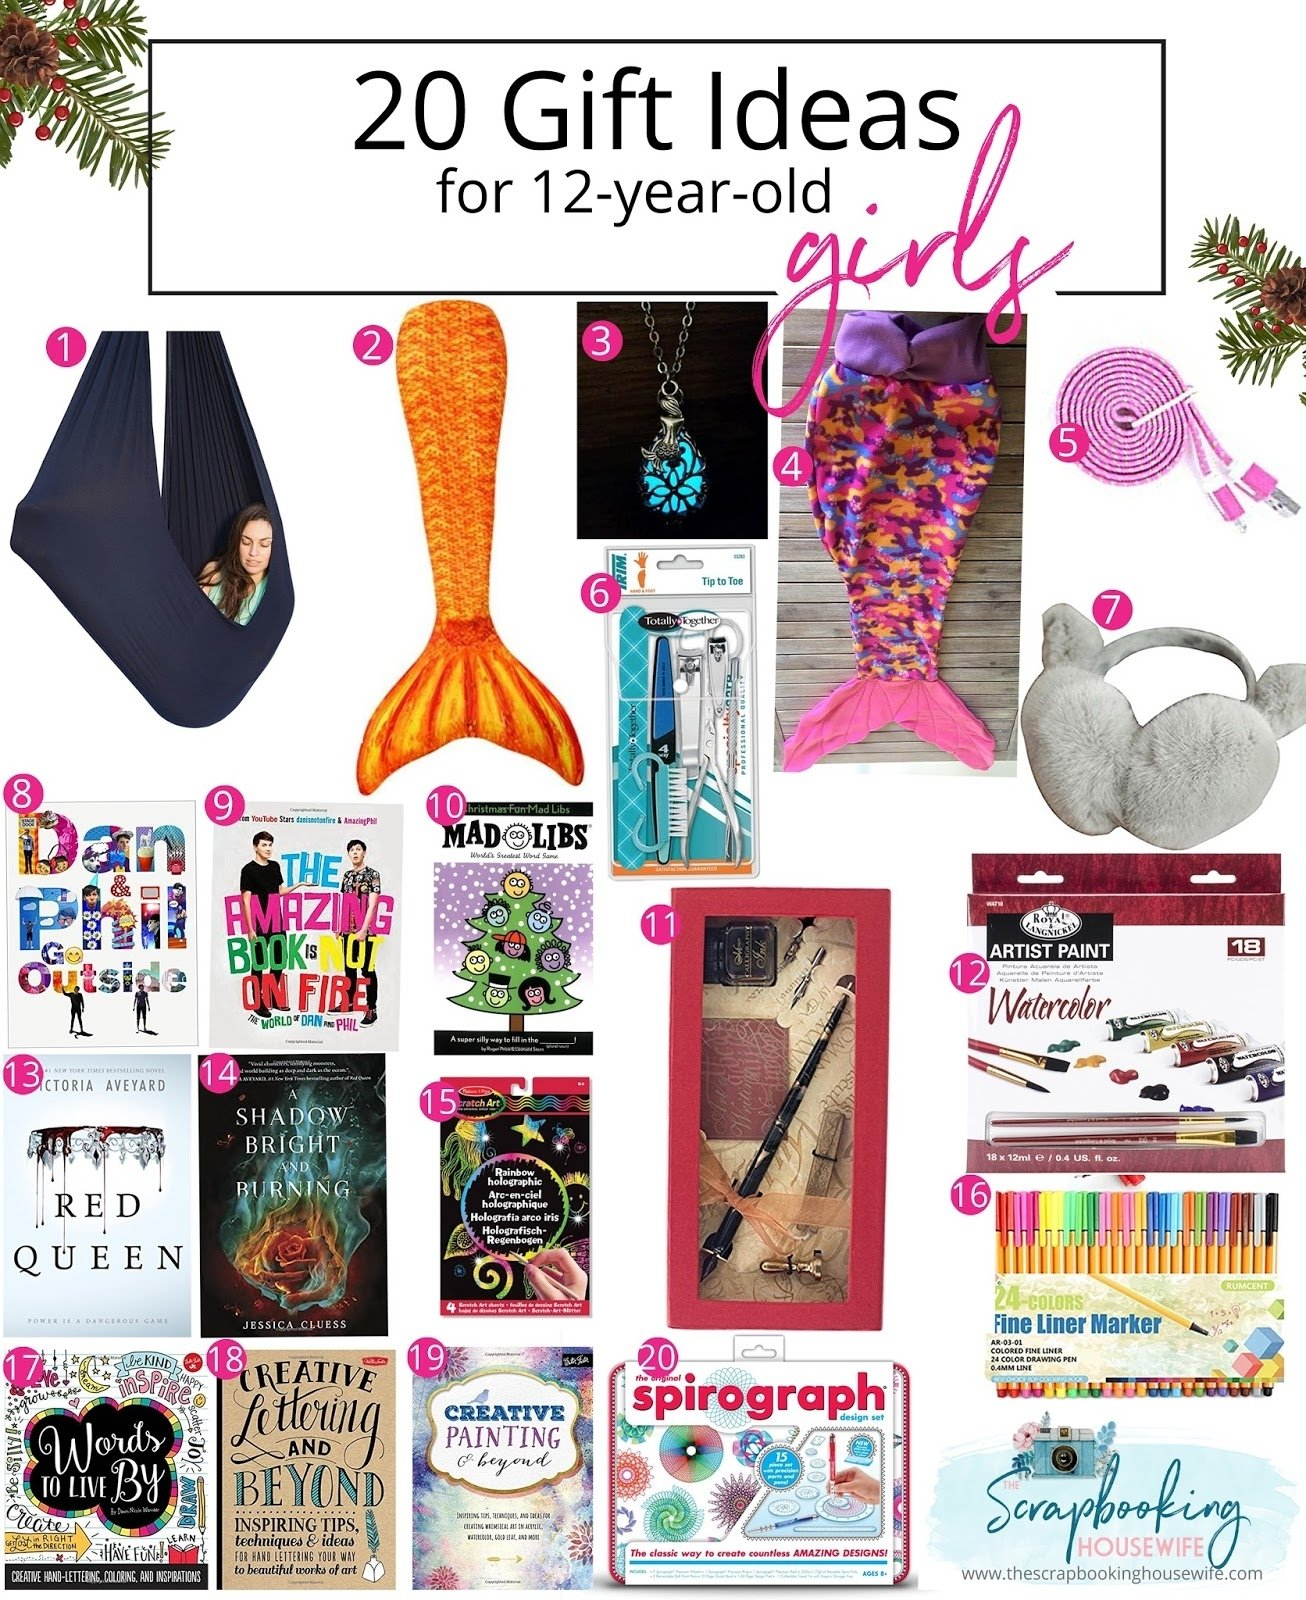 10 Fashionable Gift Ideas For A 15 Year Old Girl ellabella designs 20 gift ideas for 12 year old tween girls 21 2021